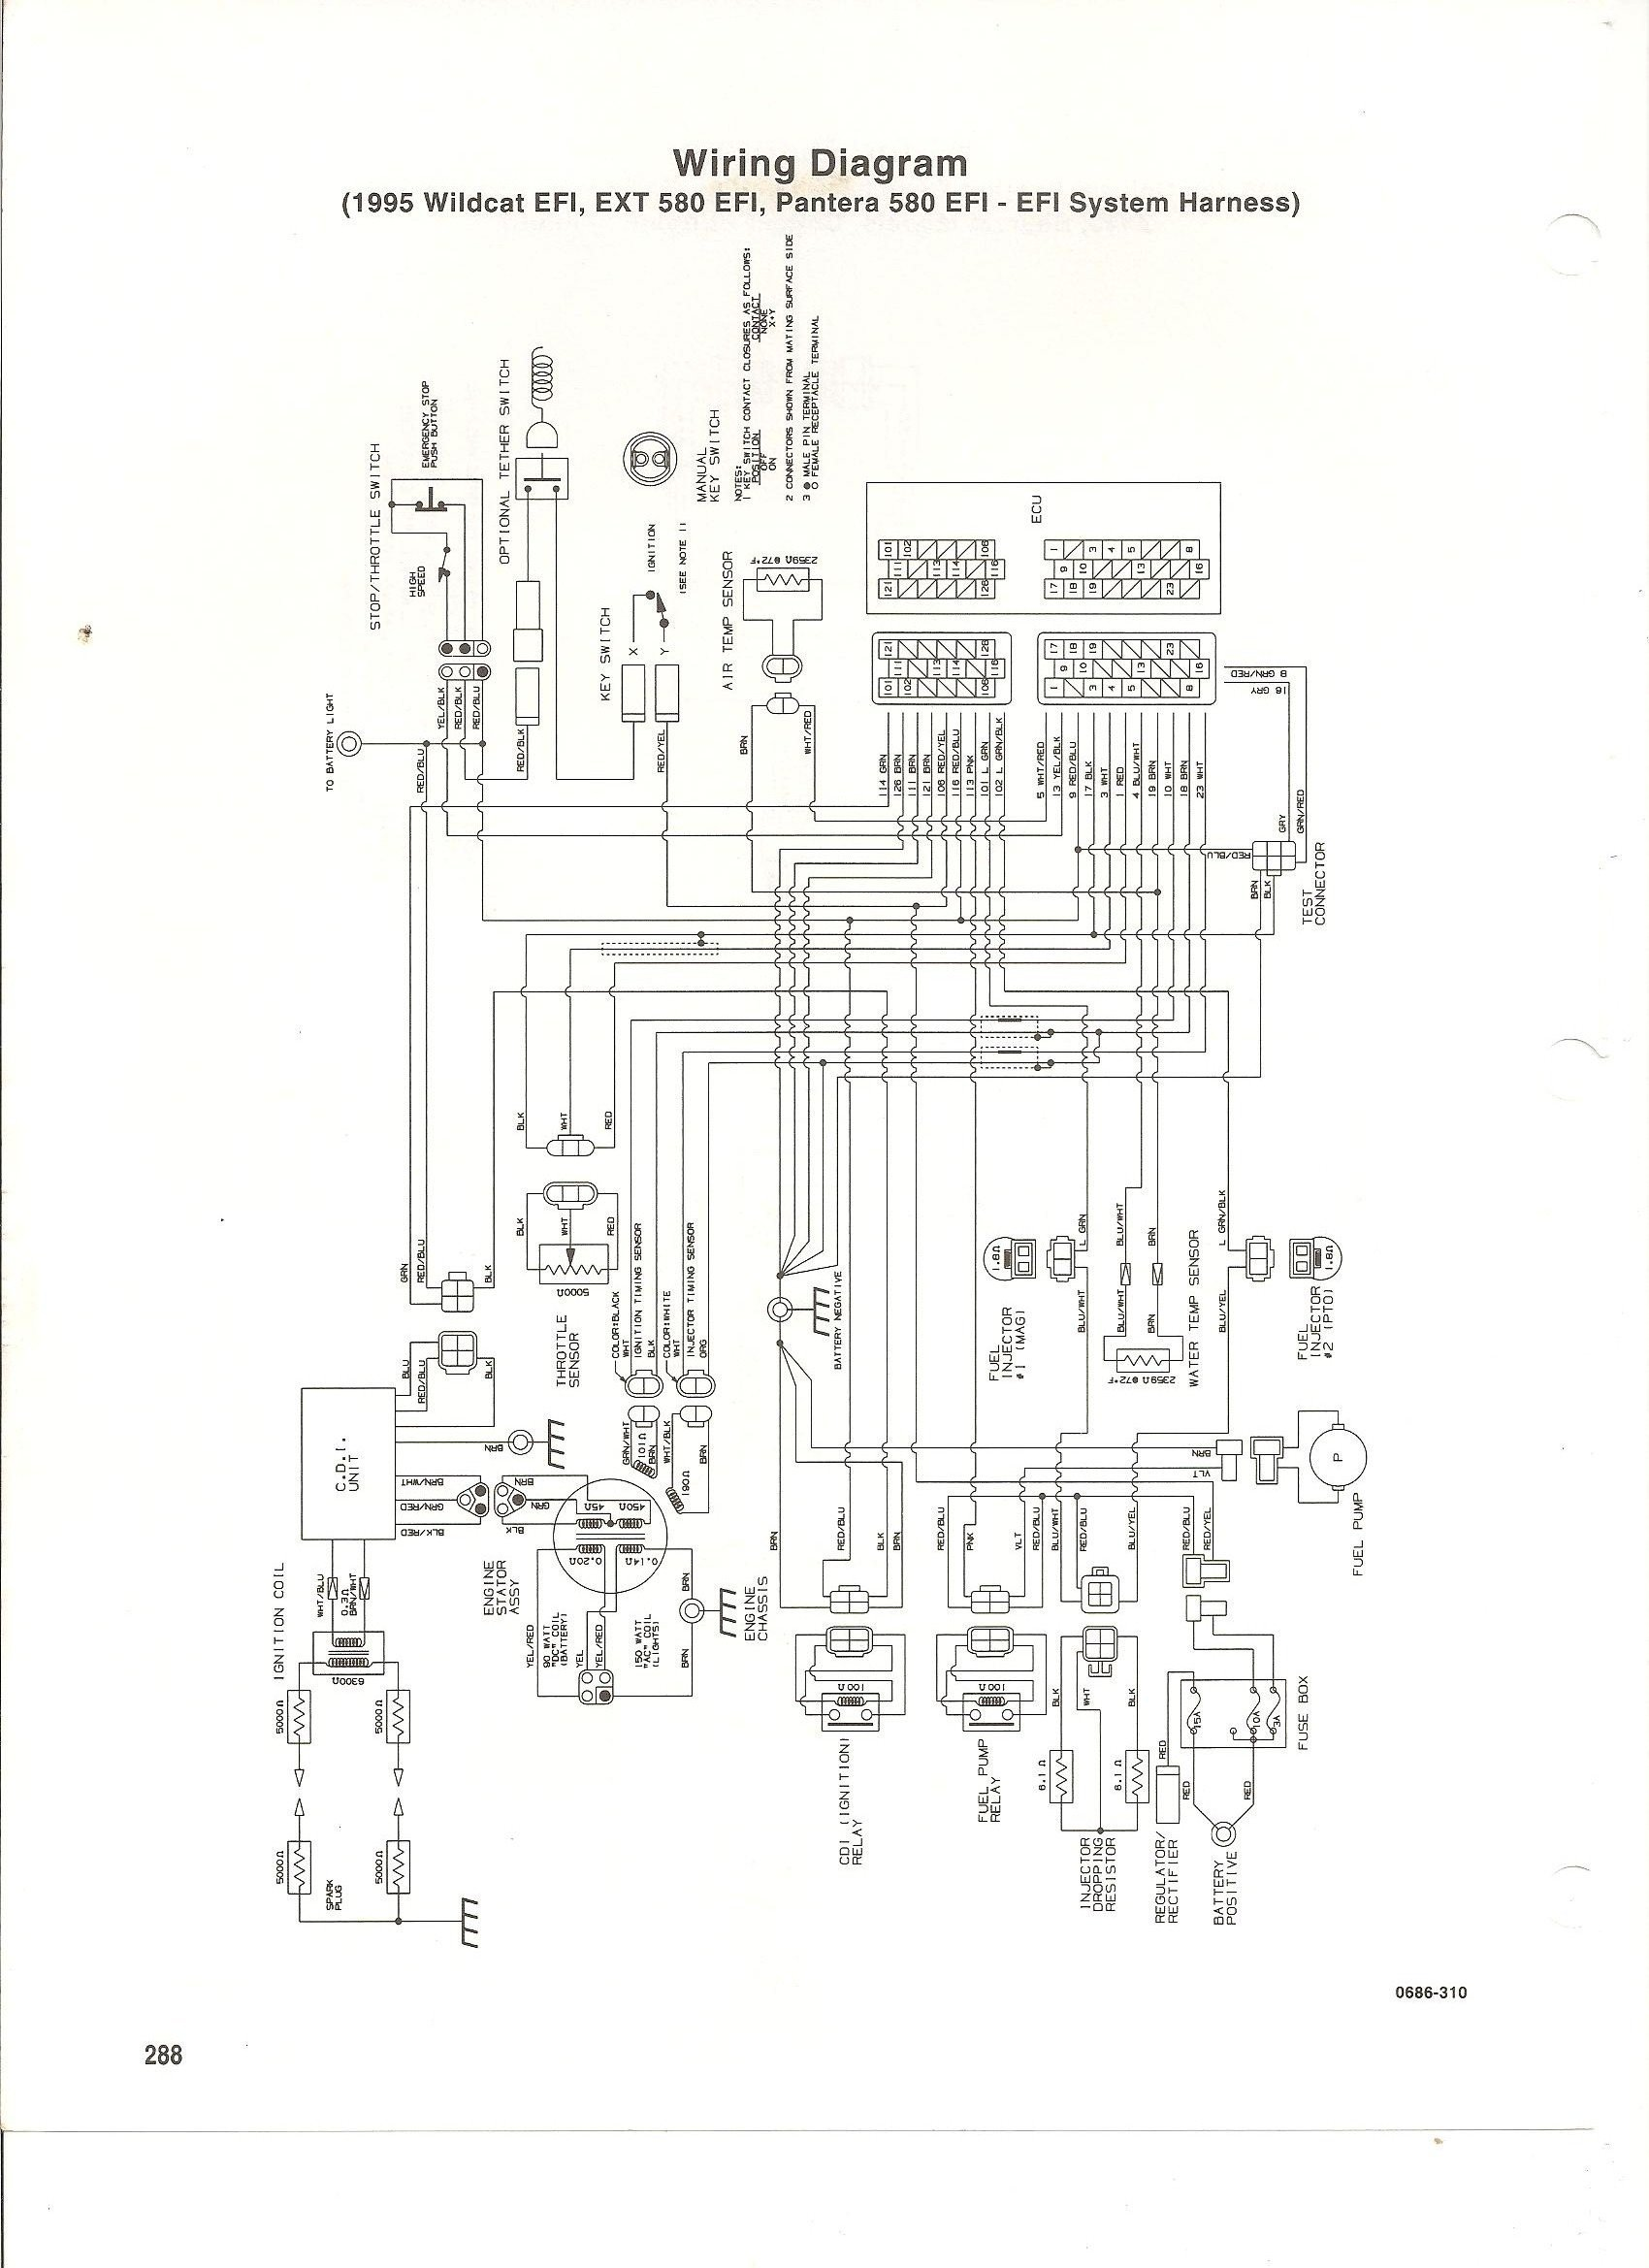 small resolution of scag wildcat wiring diagram guide about wiring diagram scag wildcat electrical diagram scag wildcat wiring diagram